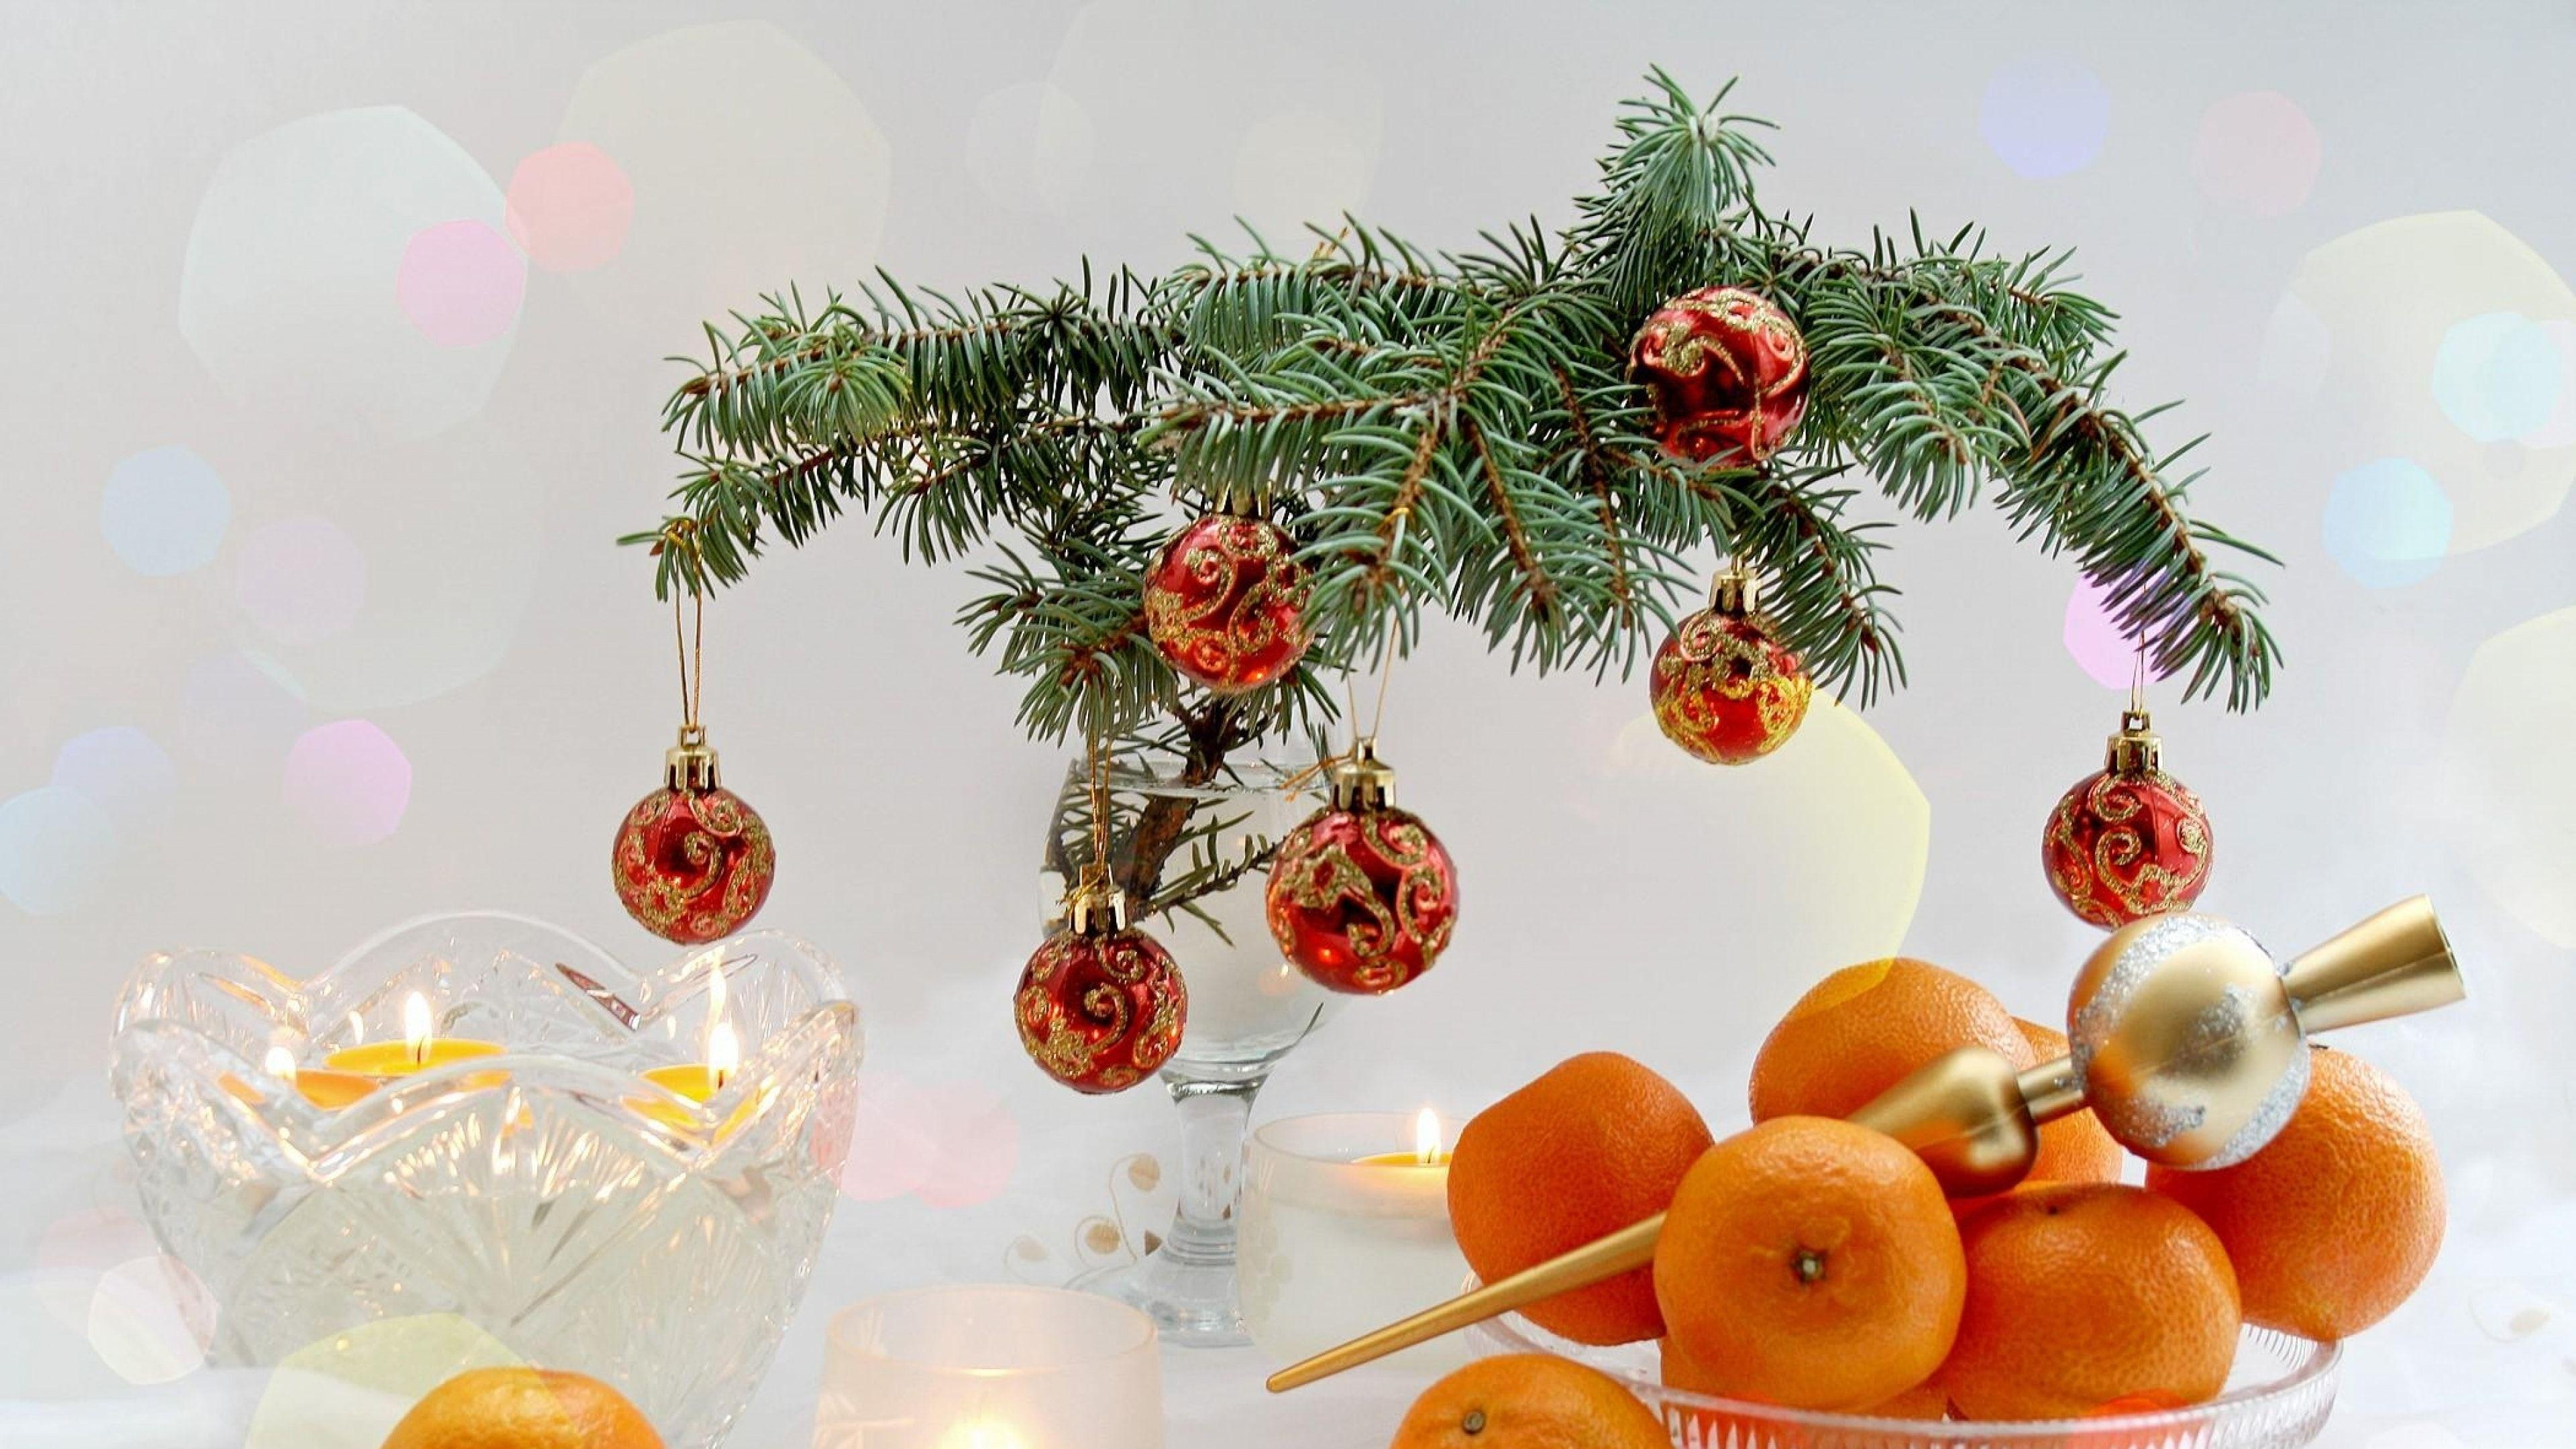 New Year Christmas Food Tangerines Branch Candles Table #3122 ...